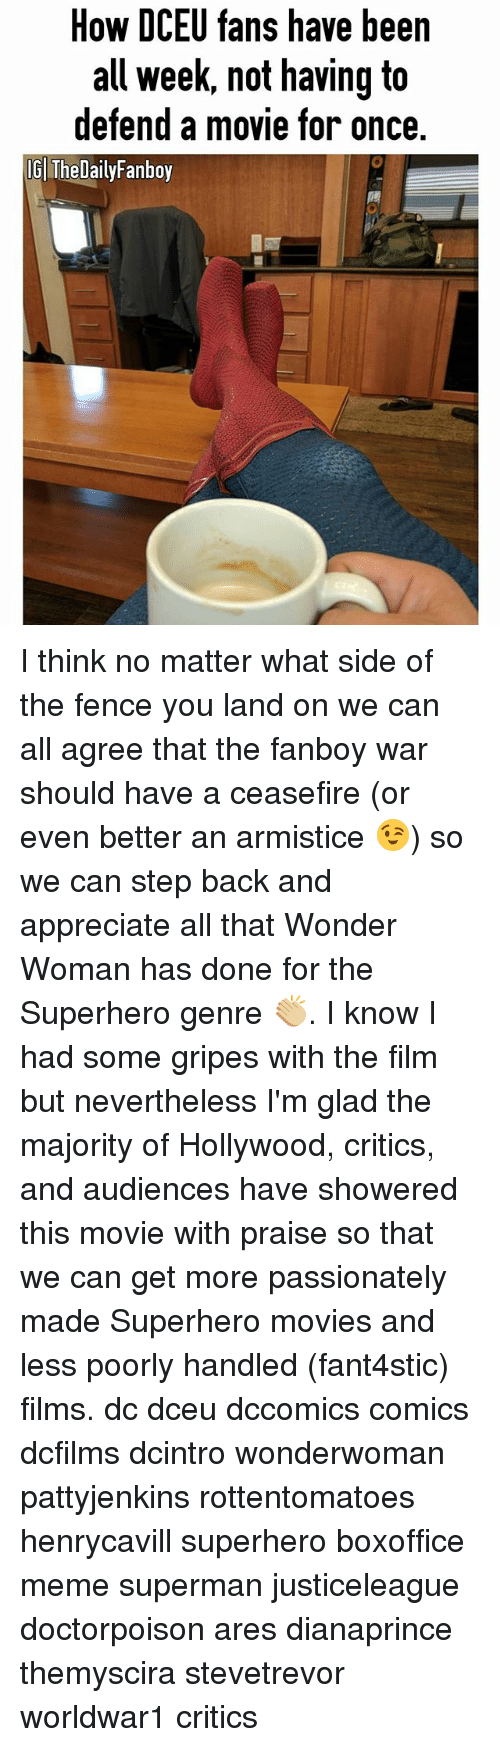 Meme, Memes, and Movies: How DCEU fans have been  all week, not having to  defend a movie for once.  IG The DailyFanboy I think no matter what side of the fence you land on we can all agree that the fanboy war should have a ceasefire (or even better an armistice 😉) so we can step back and appreciate all that Wonder Woman has done for the Superhero genre 👏🏼. I know I had some gripes with the film but nevertheless I'm glad the majority of Hollywood, critics, and audiences have showered this movie with praise so that we can get more passionately made Superhero movies and less poorly handled (fant4stic) films. dc dceu dccomics comics dcfilms dcintro wonderwoman pattyjenkins rottentomatoes henrycavill superhero boxoffice meme superman justiceleague doctorpoison ares dianaprince themyscira stevetrevor worldwar1 critics